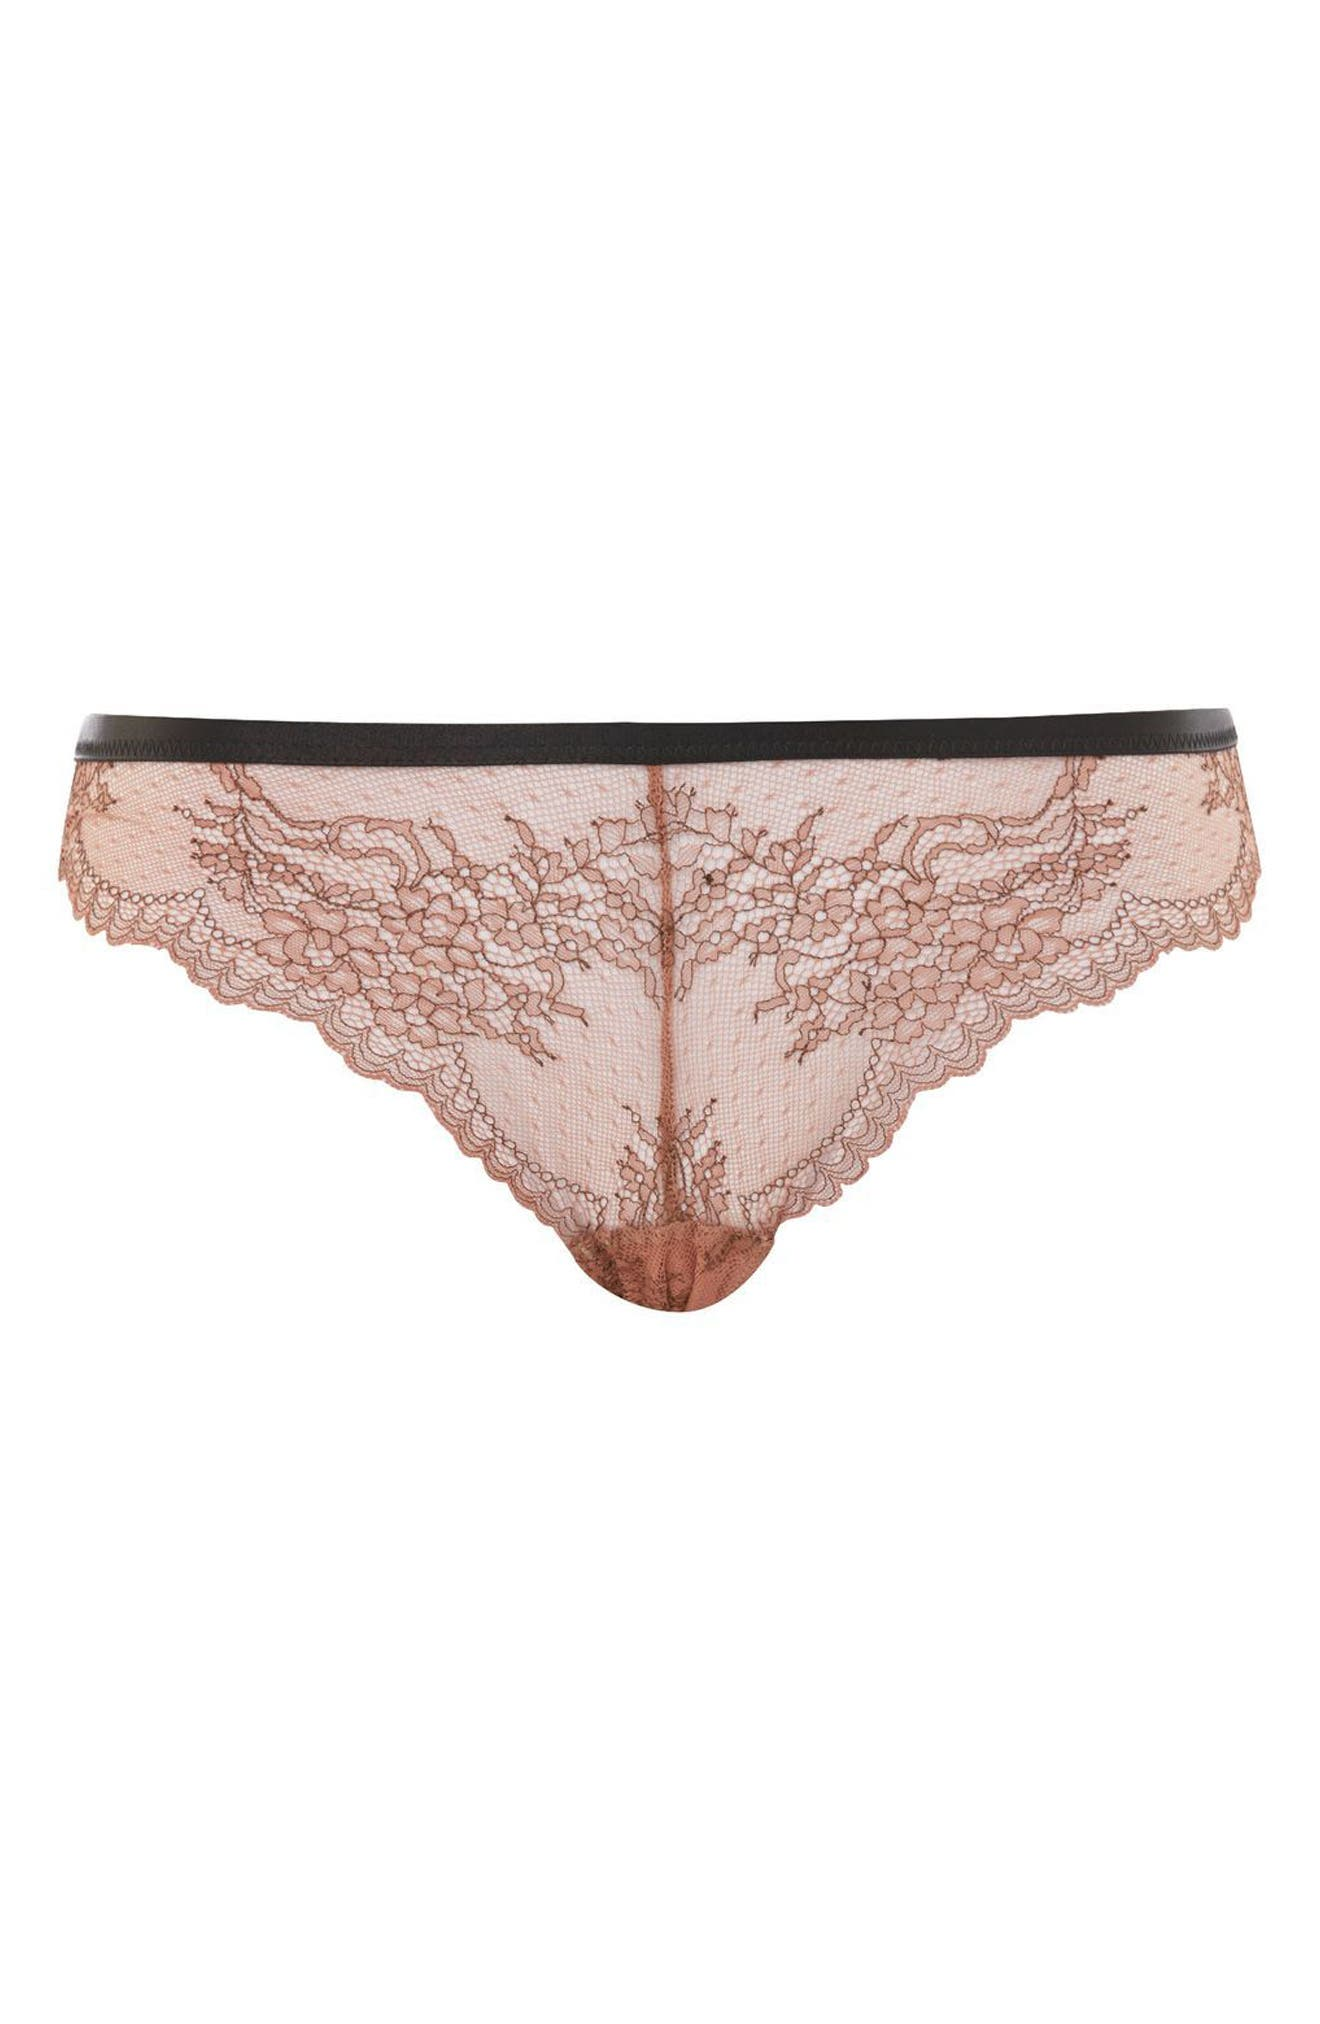 Lila Lace Brazilian Panties,                             Alternate thumbnail 2, color,                             250